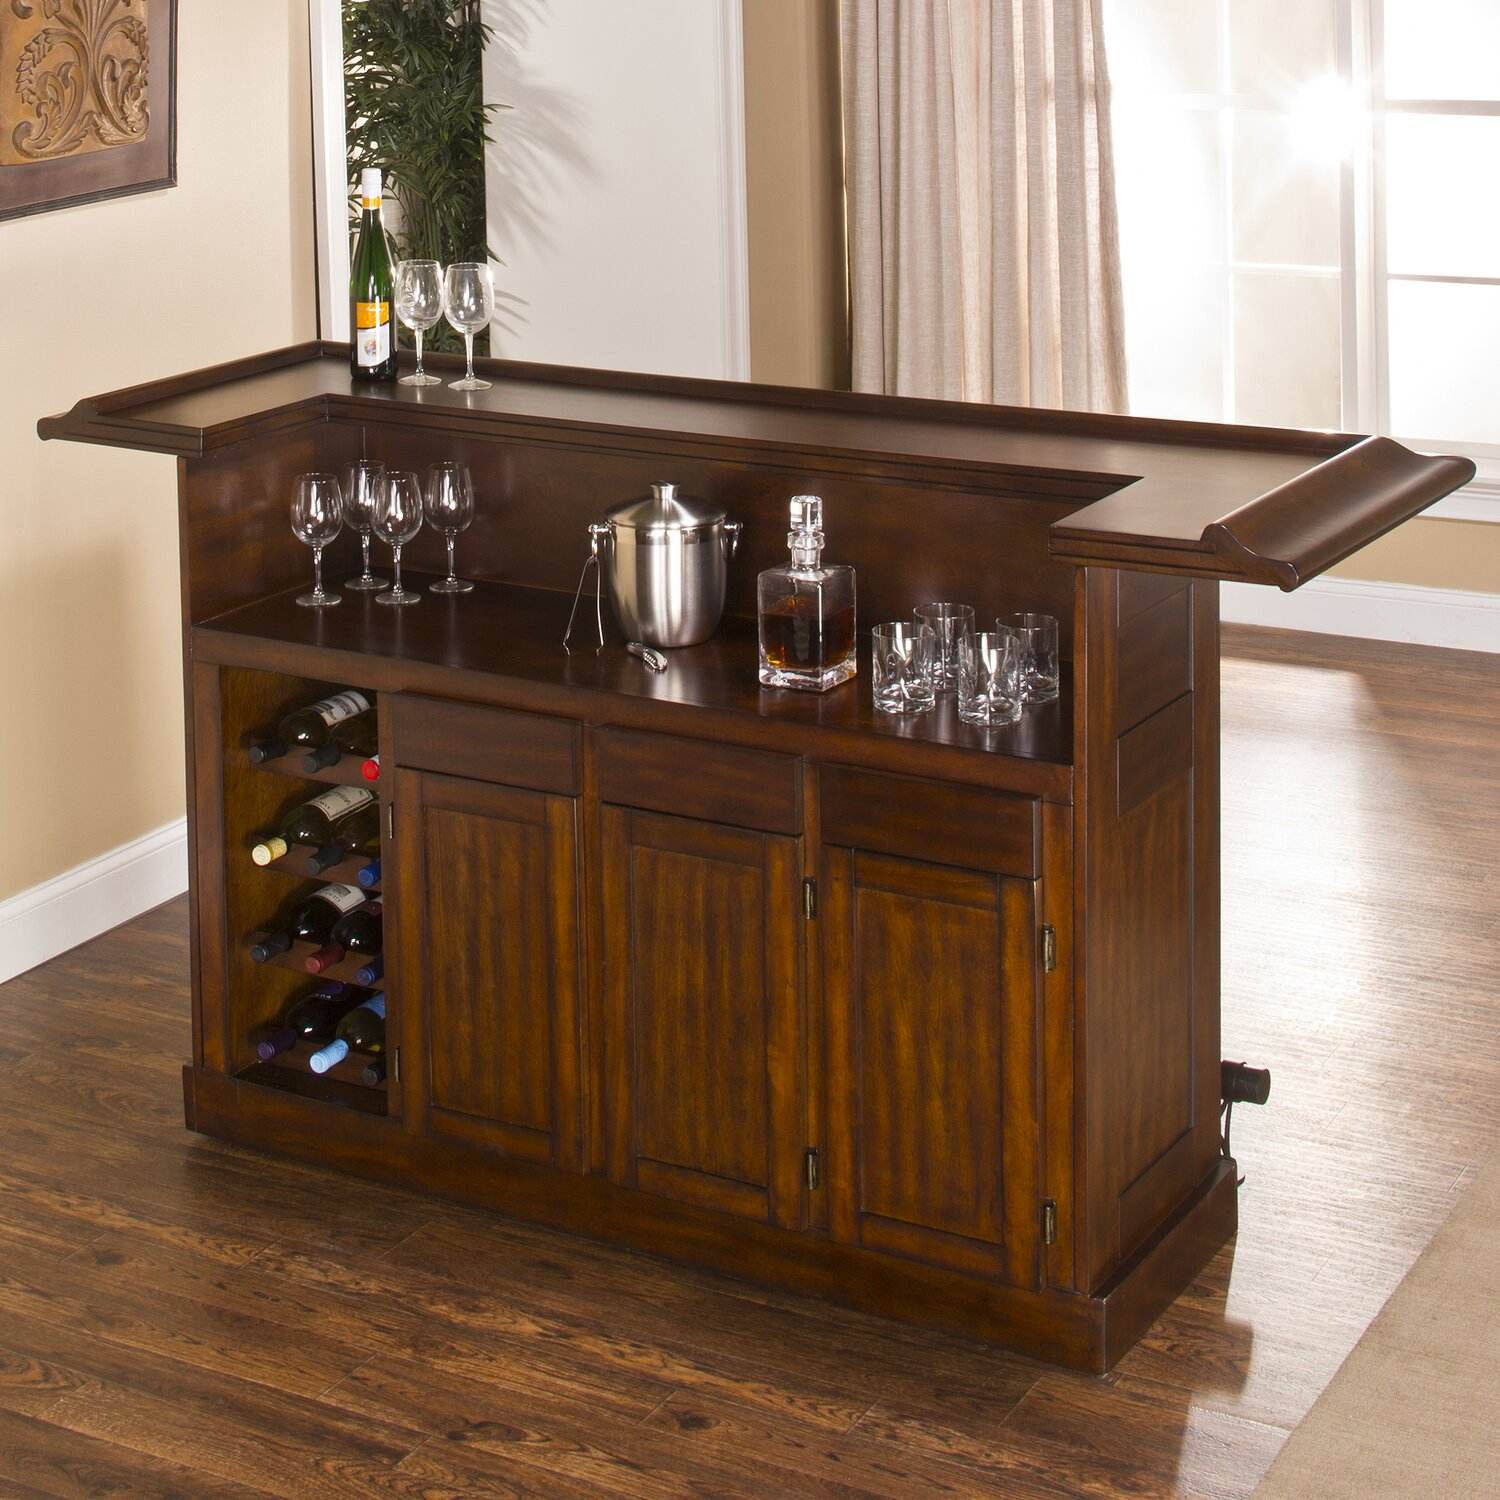 A bar cabinet with Wine bottles.